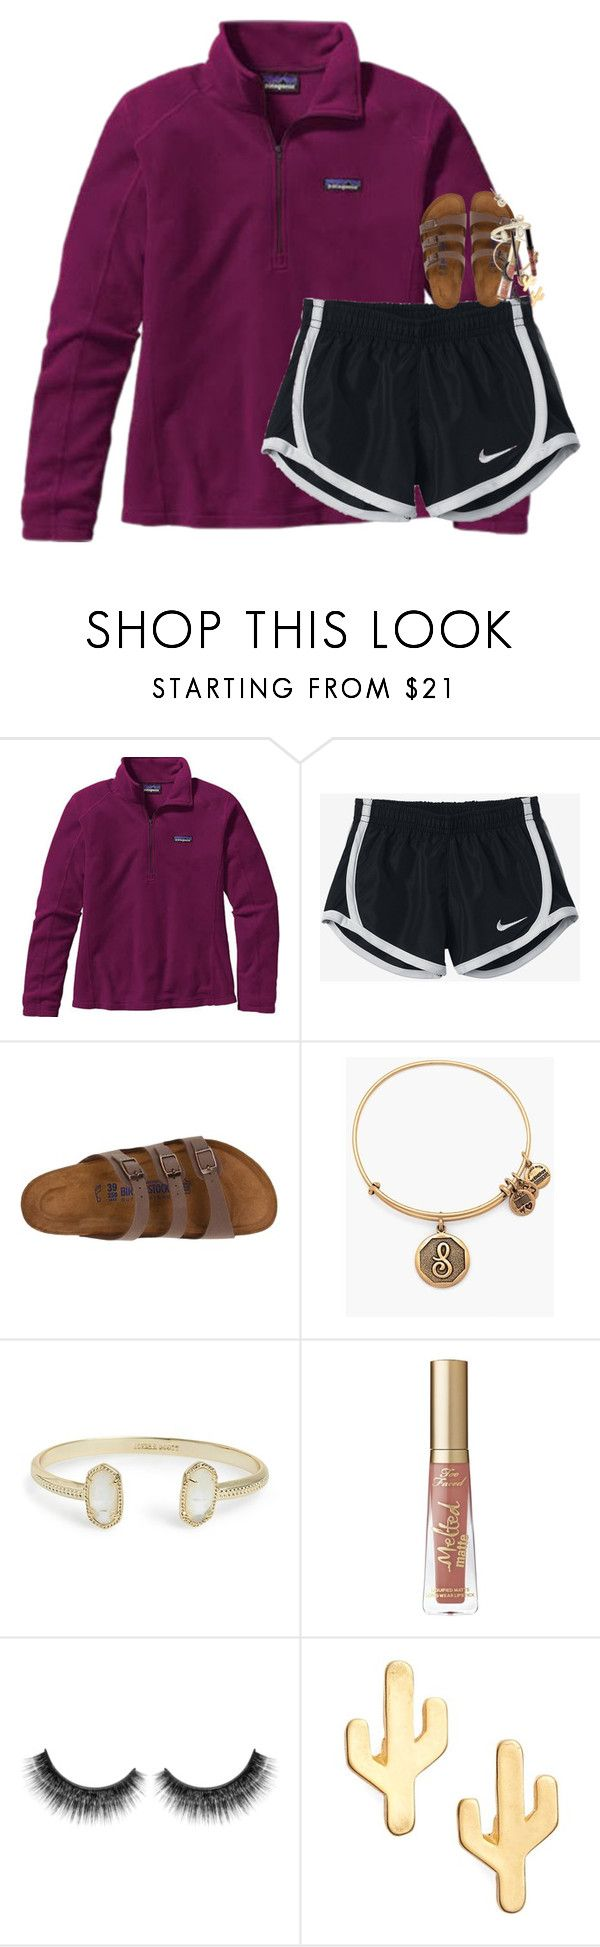 """""""I'm going to change my tag list a bit!"""" by classynsouthern ❤ liked on Polyvore featuring Patagonia, NIKE, Birkenstock, Alex and Ani, Kendra Scott, Too Faced Cosmetics, CAM and J.Crew"""